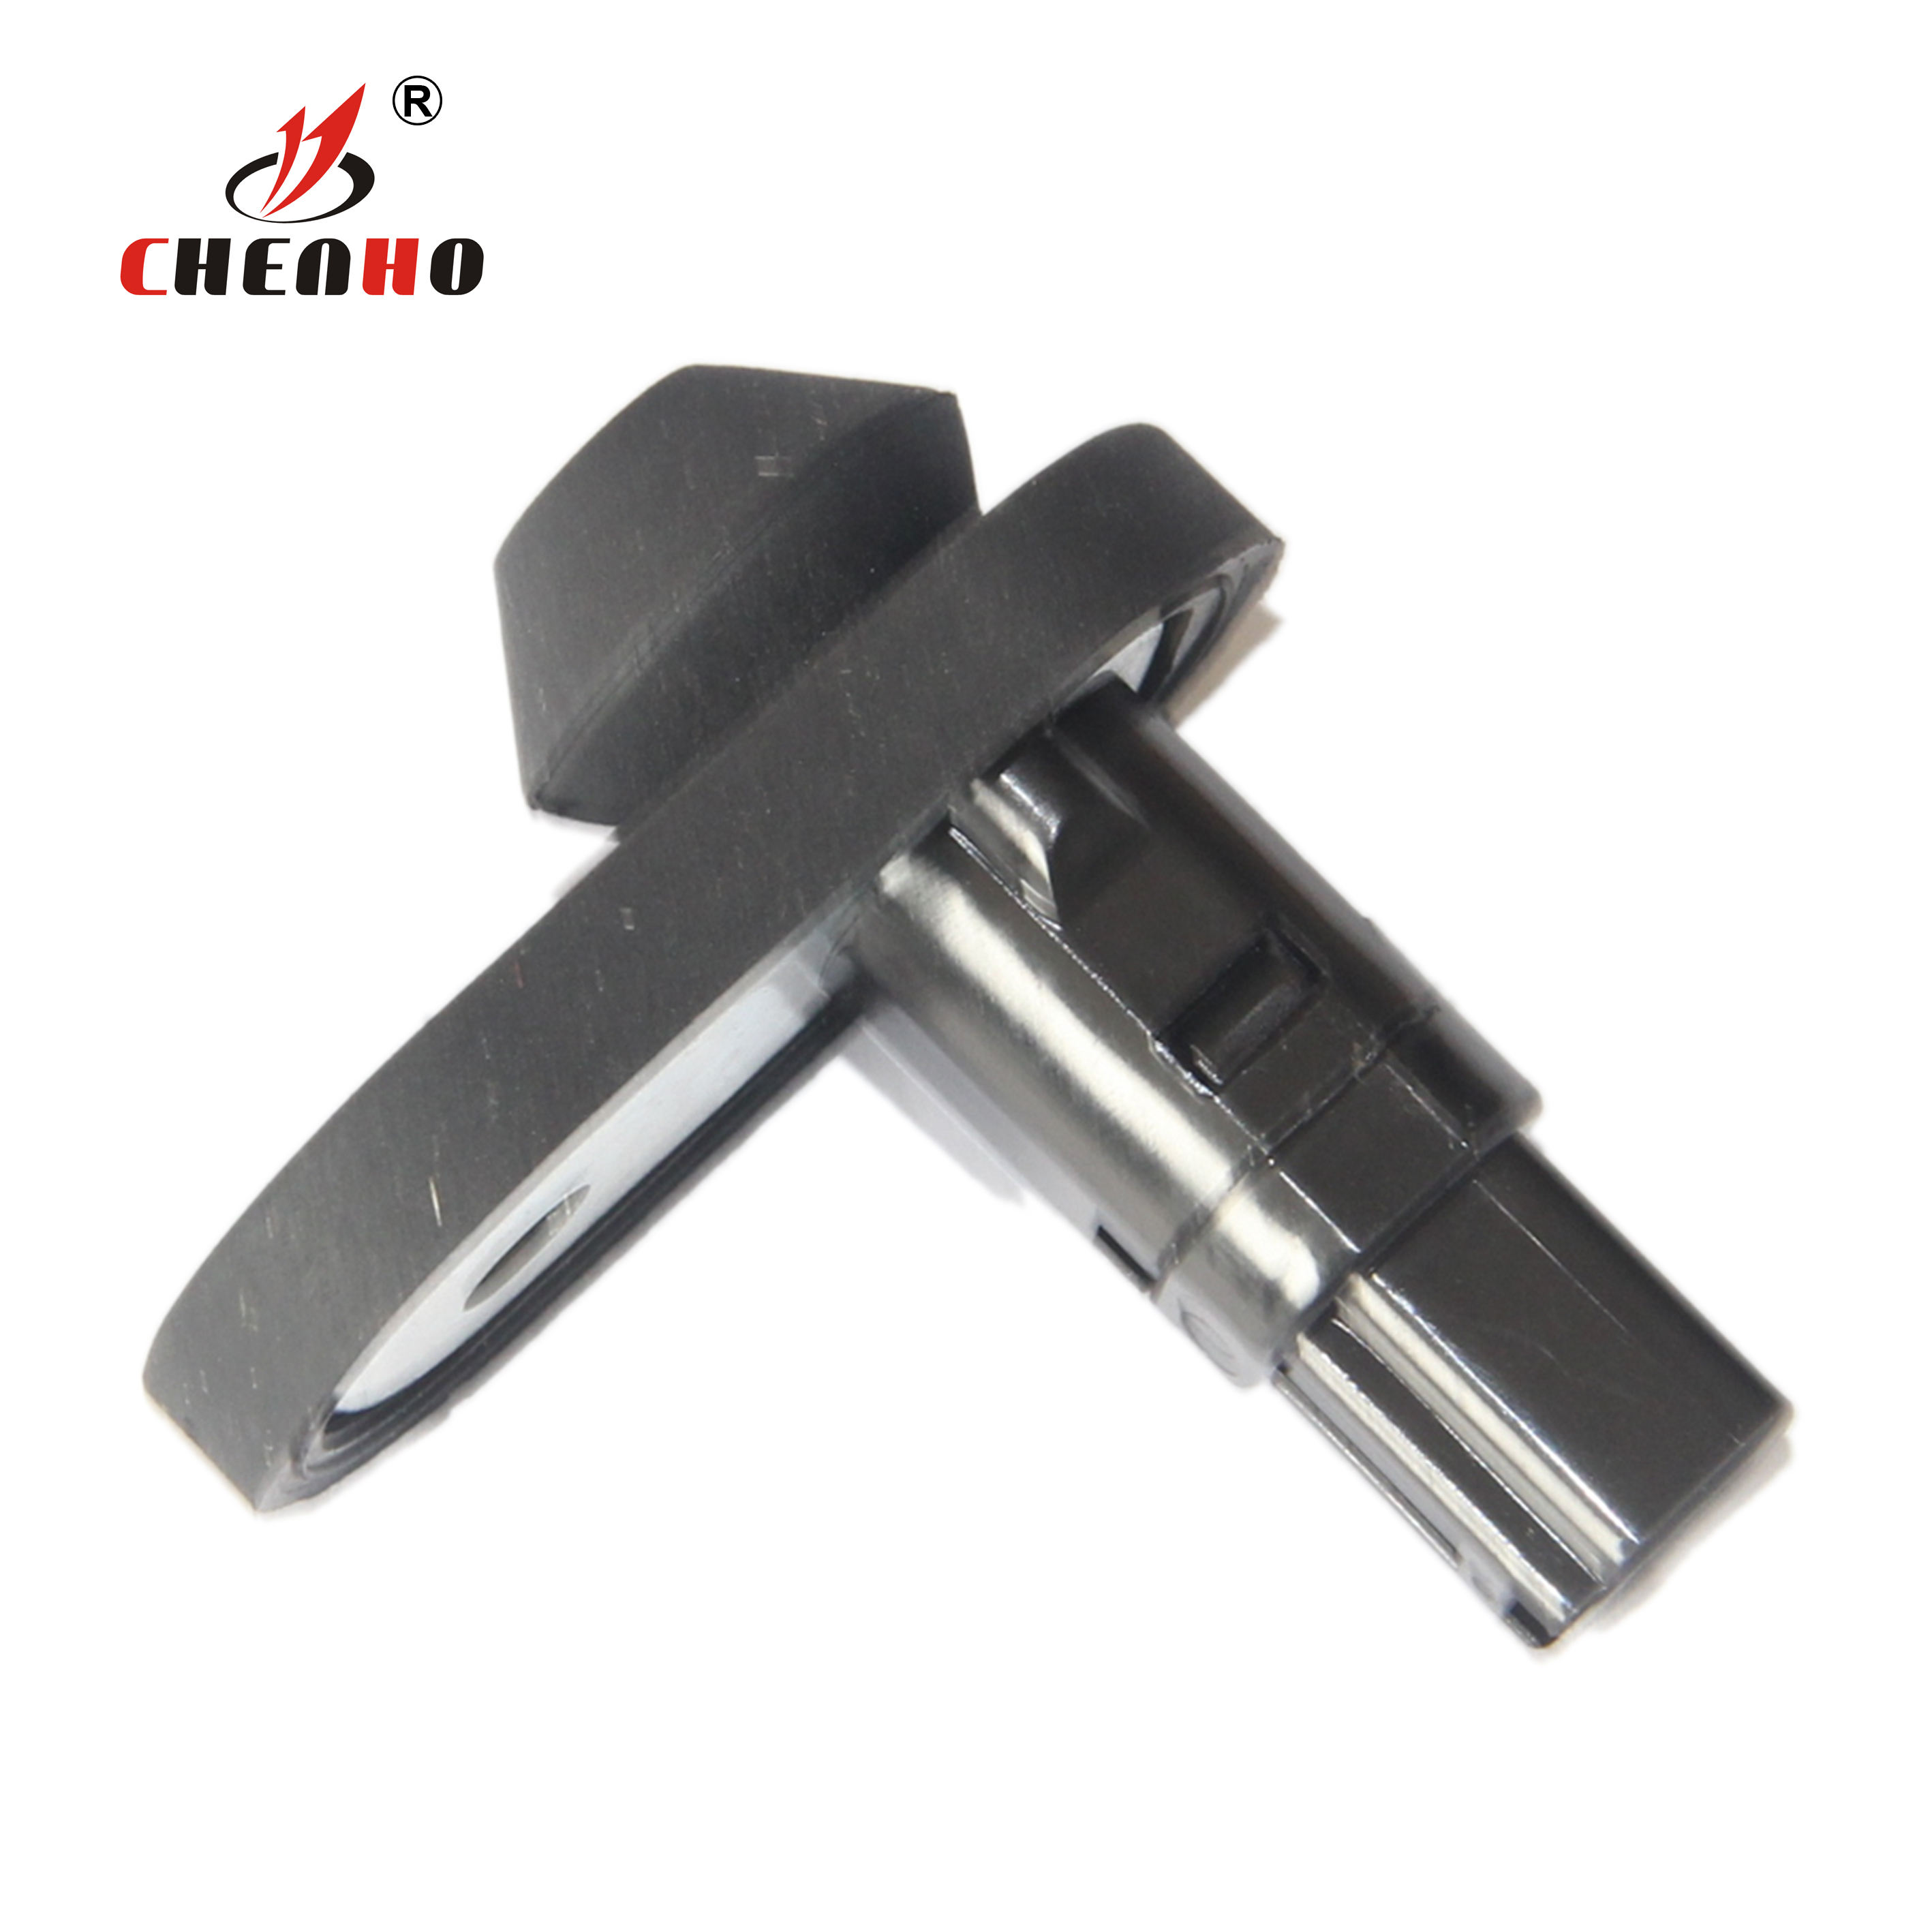 Universal Door Switch Pin Telescopic Plunger Car Courtesy Light New